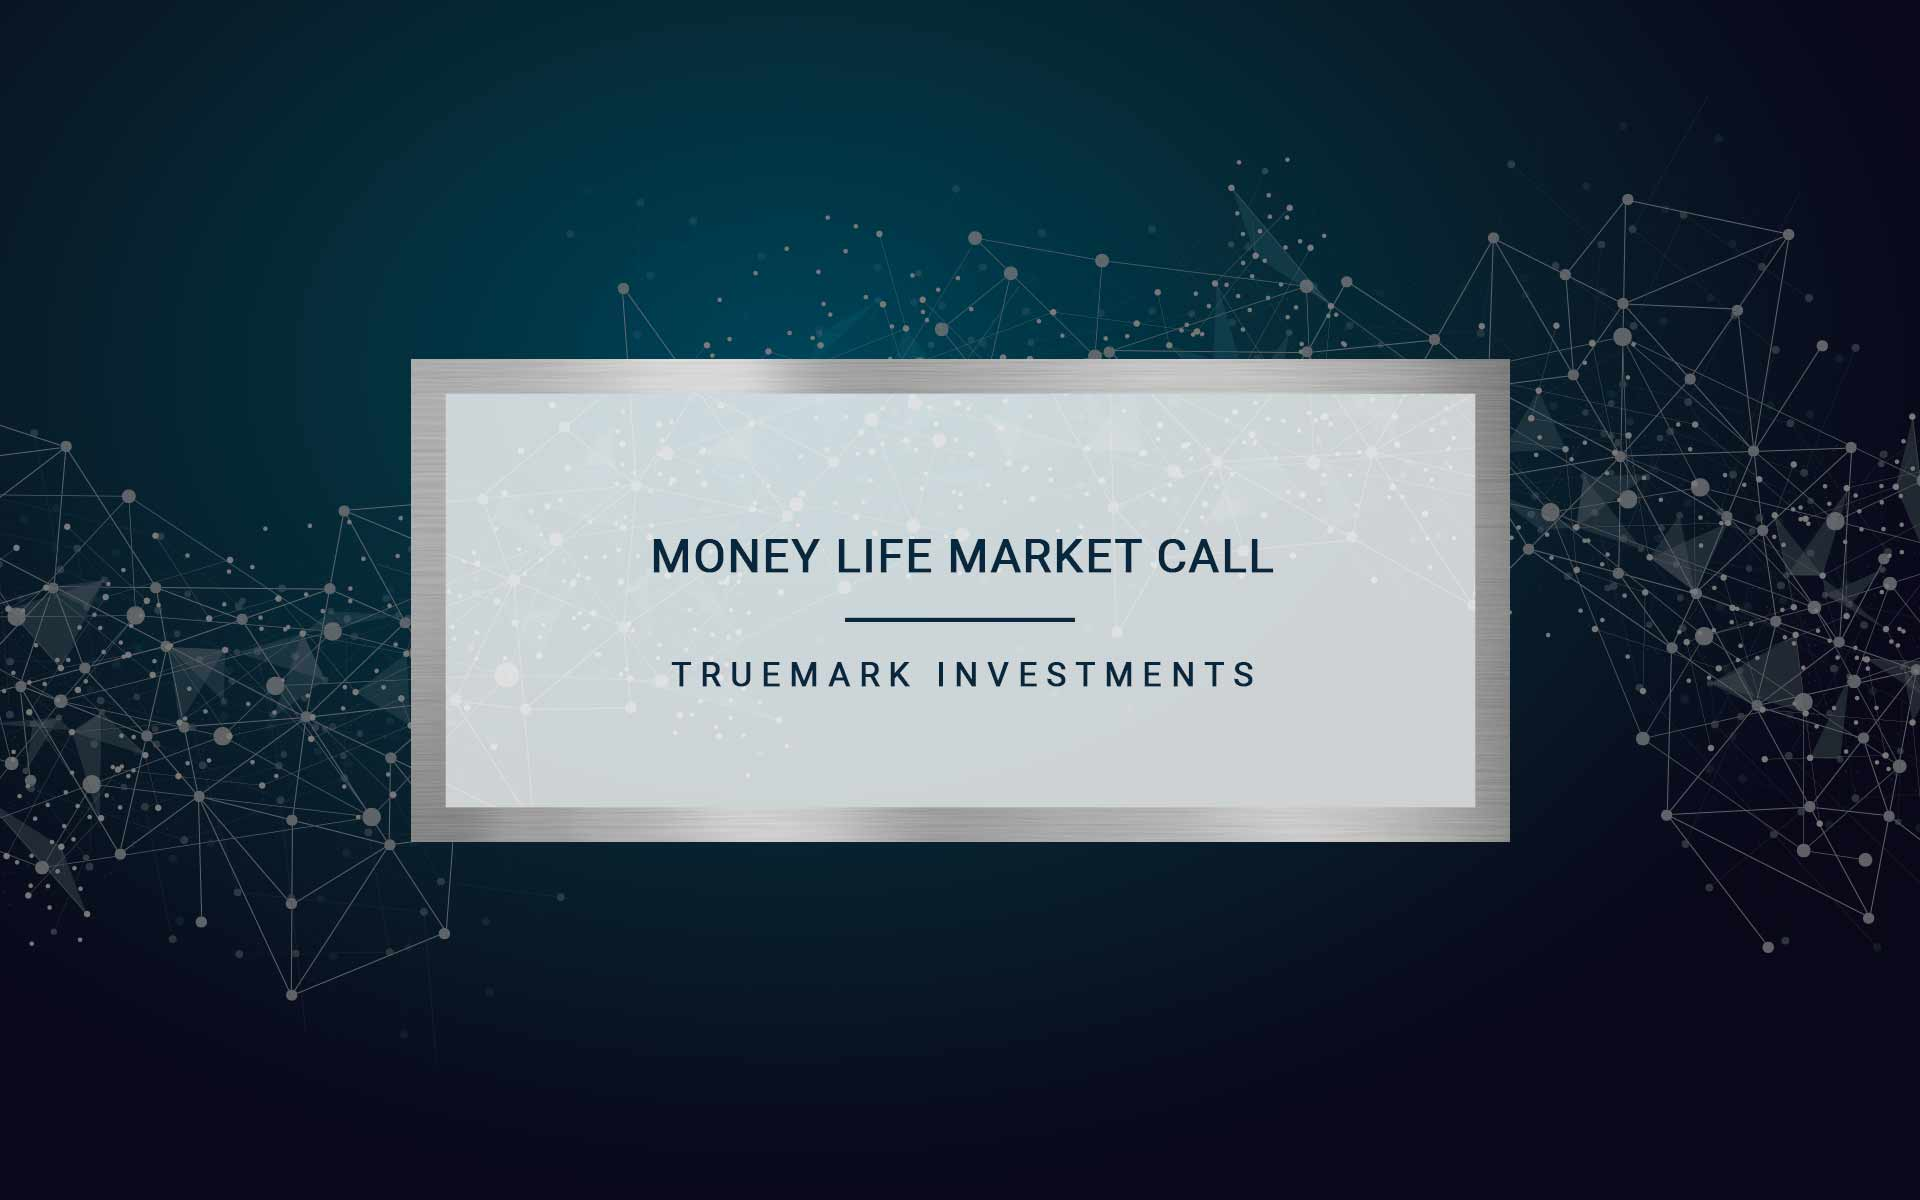 MONEY LIFE MARKET CALL | JORDAN WALDREP